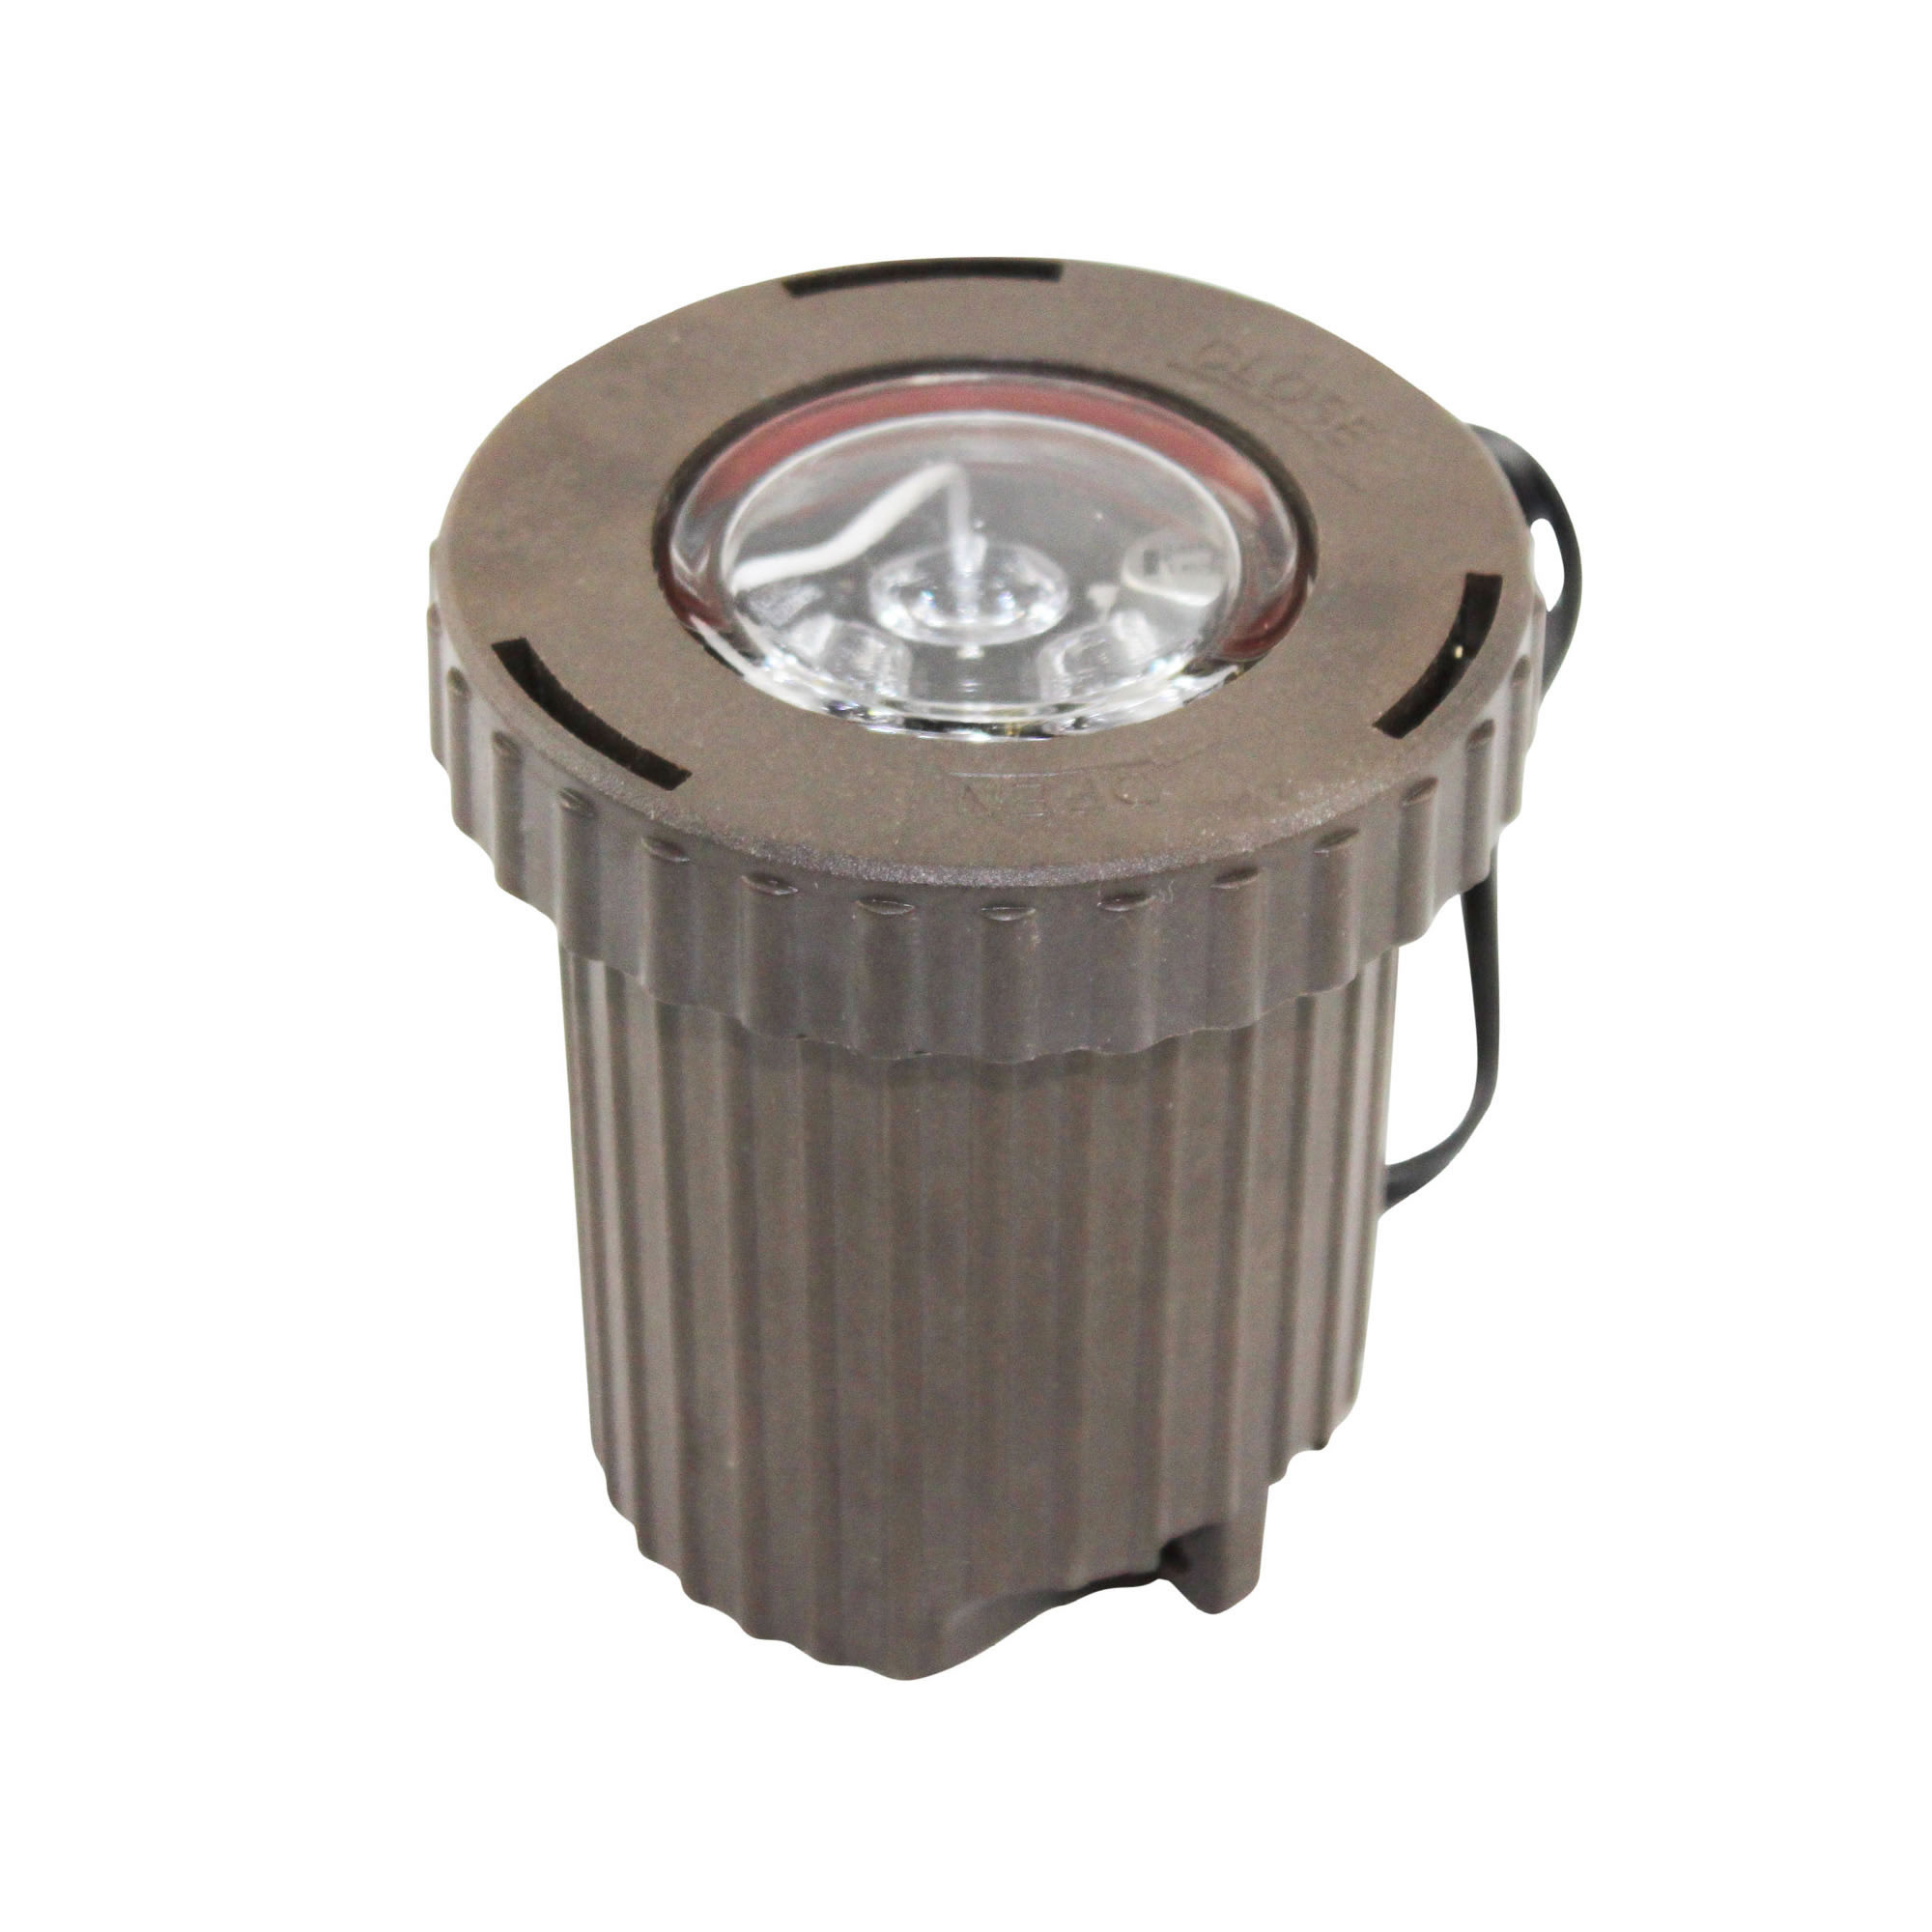 Low Voltage Outdoor Lighting Replacement Parts: HADCO PHILIPS LED INGROUND LOW VOLTAGE LANDSCAPE LIGHT; BRONZE